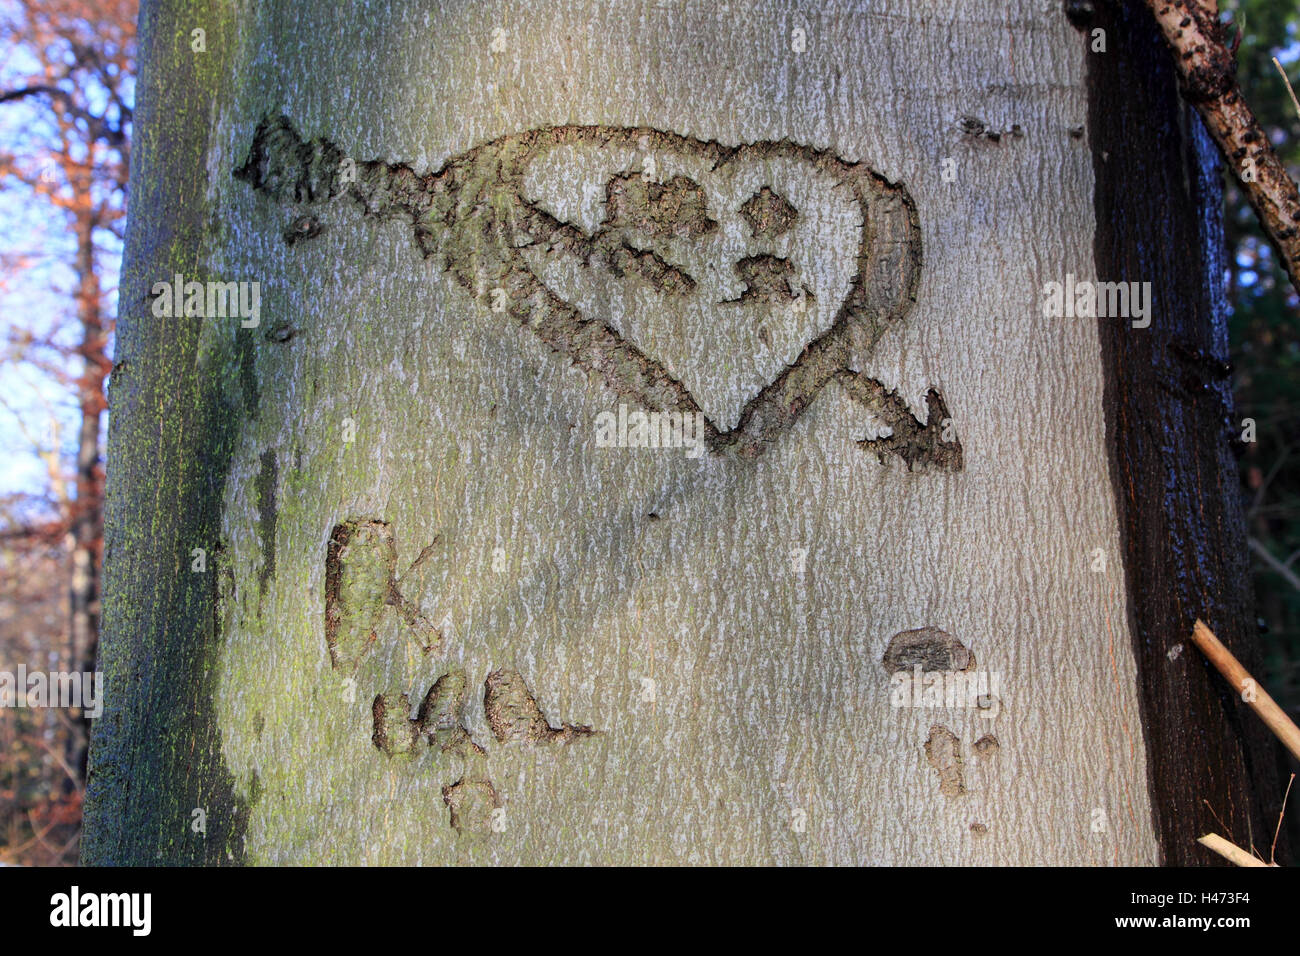 Heart in tree scratched, - Stock Image